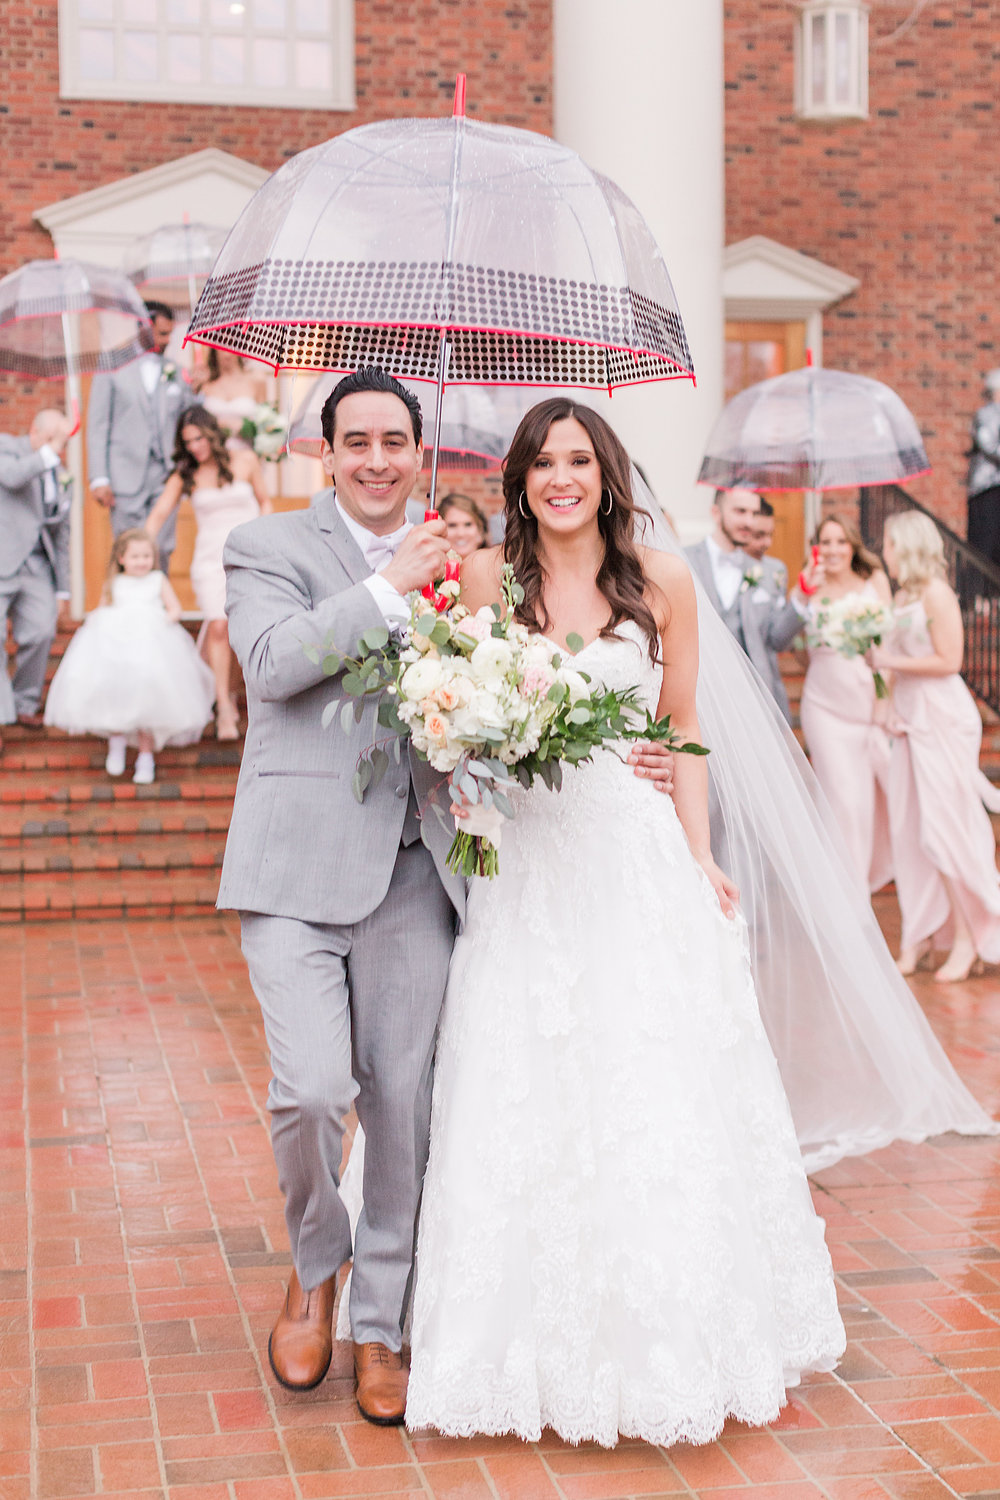 A couple rain showers weren't going to put a damper on Amy and AC's wedding day.